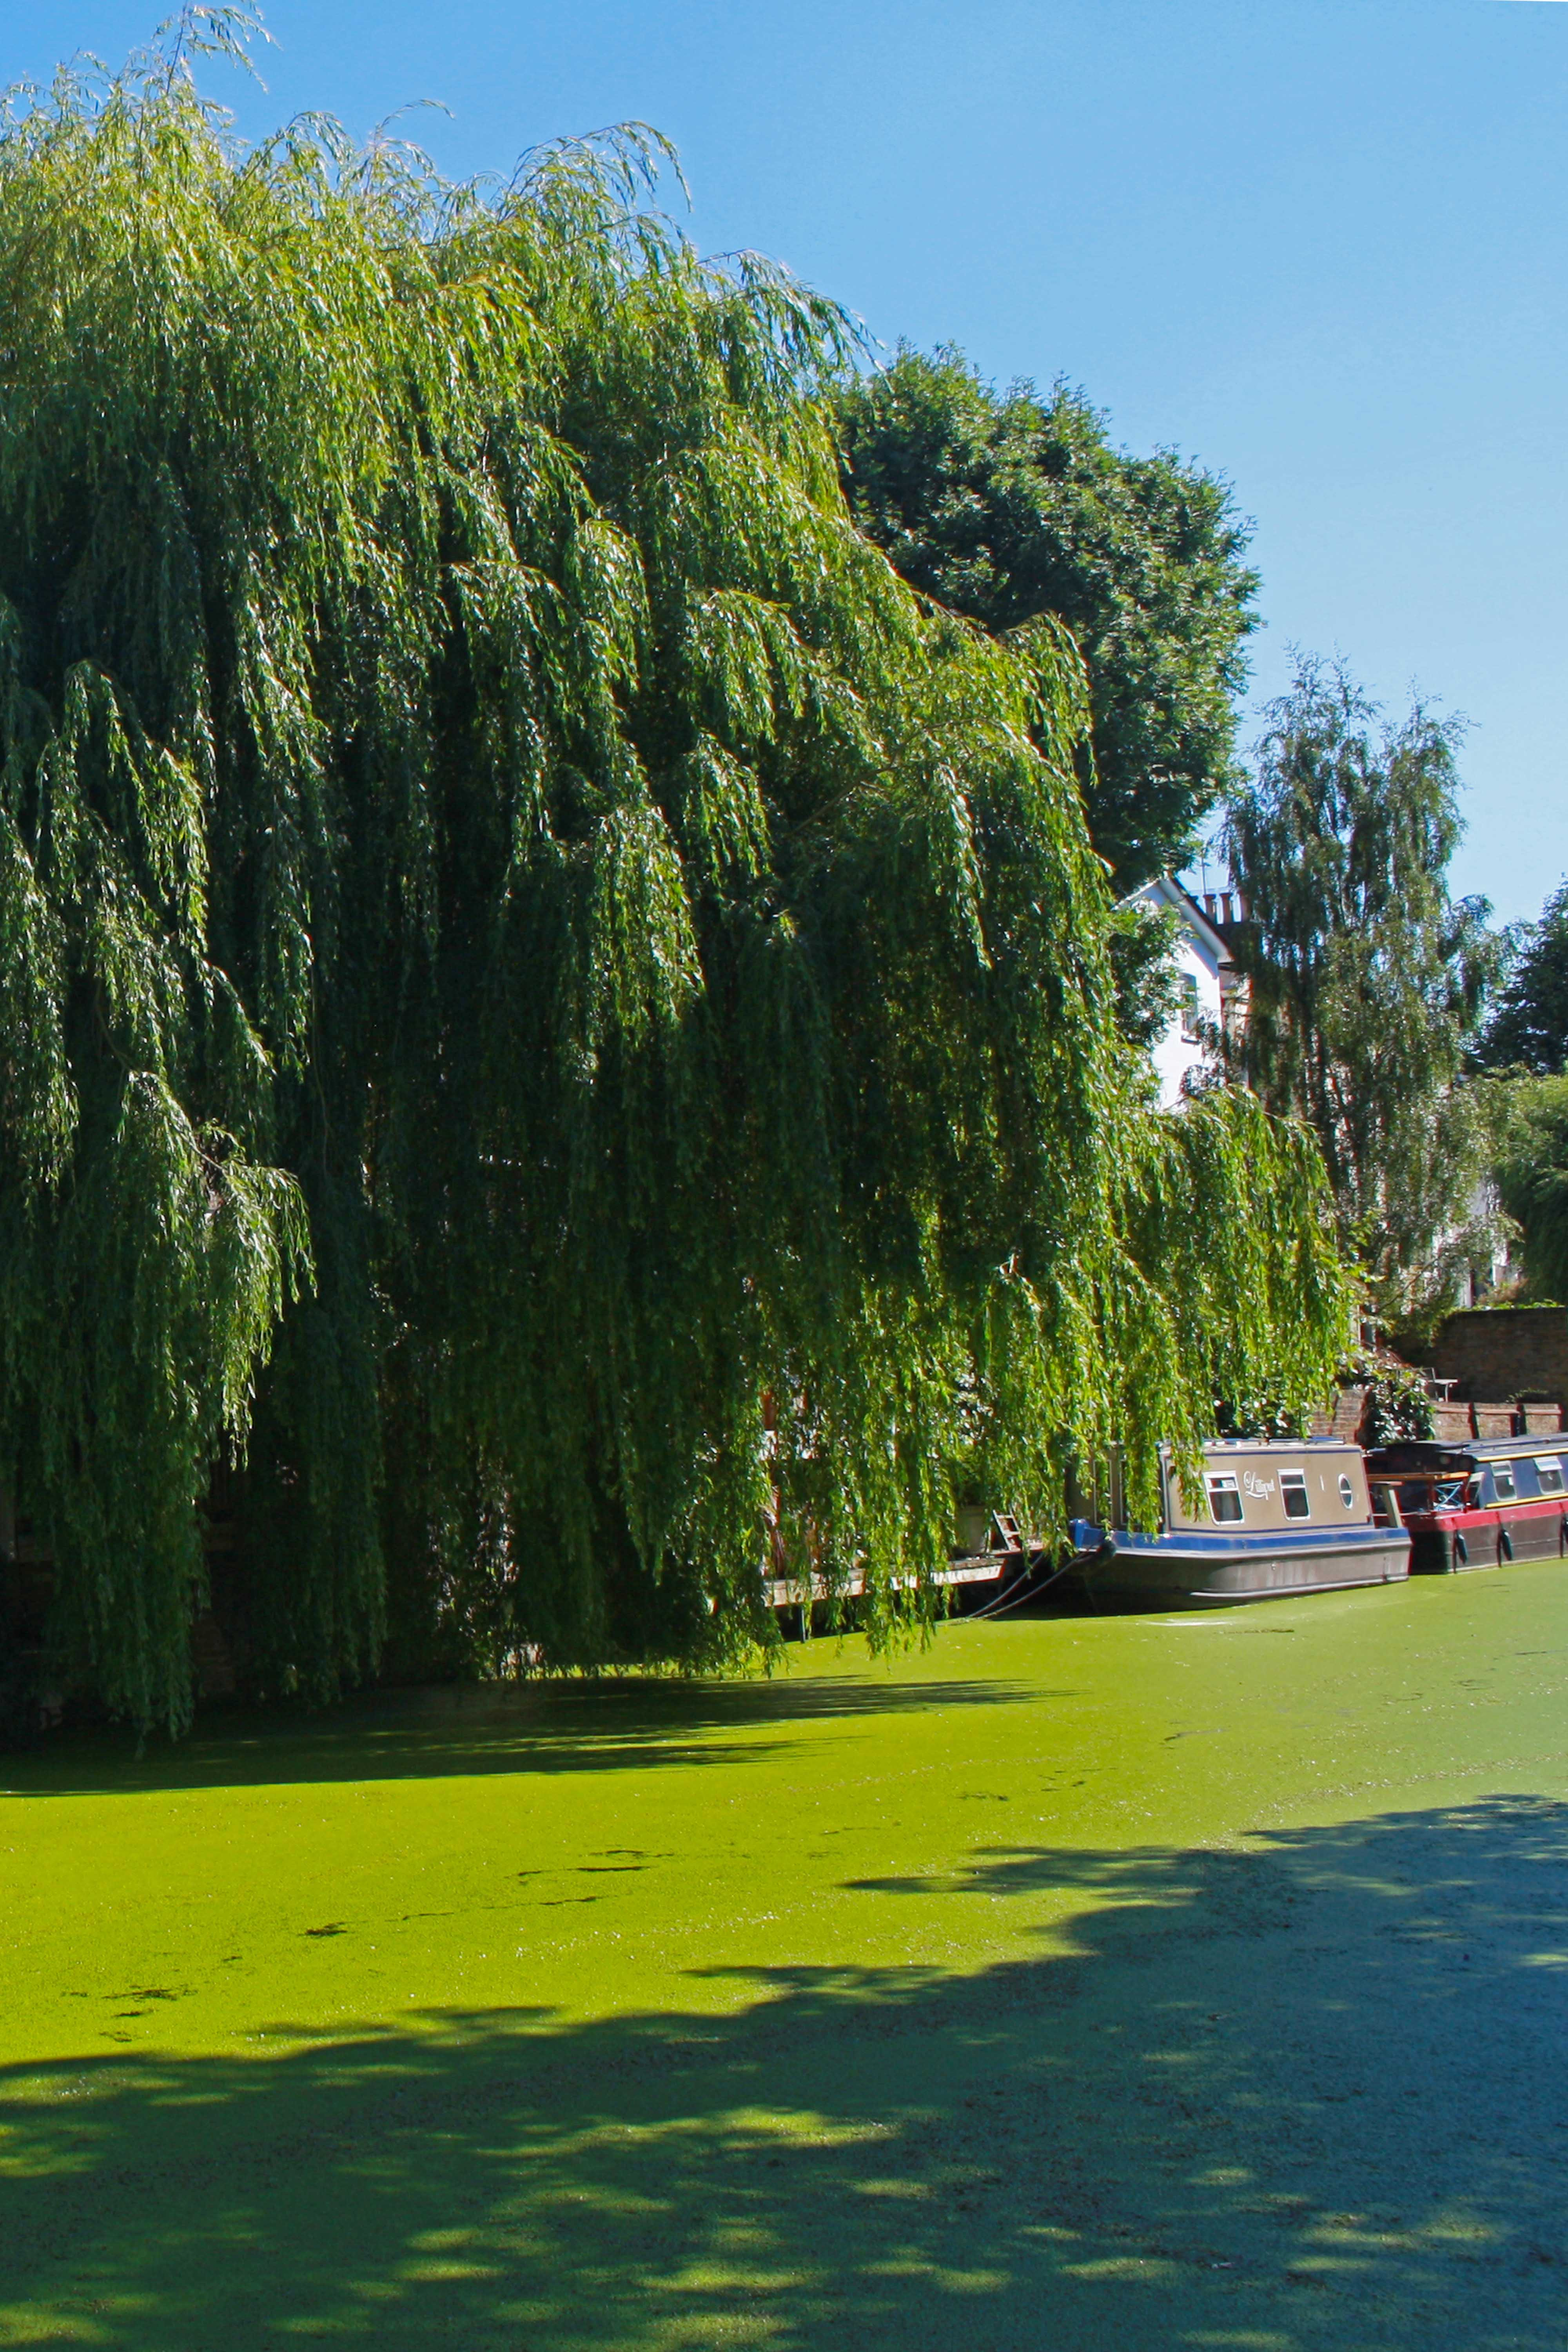 Willow tree and boats on Regent's Canal